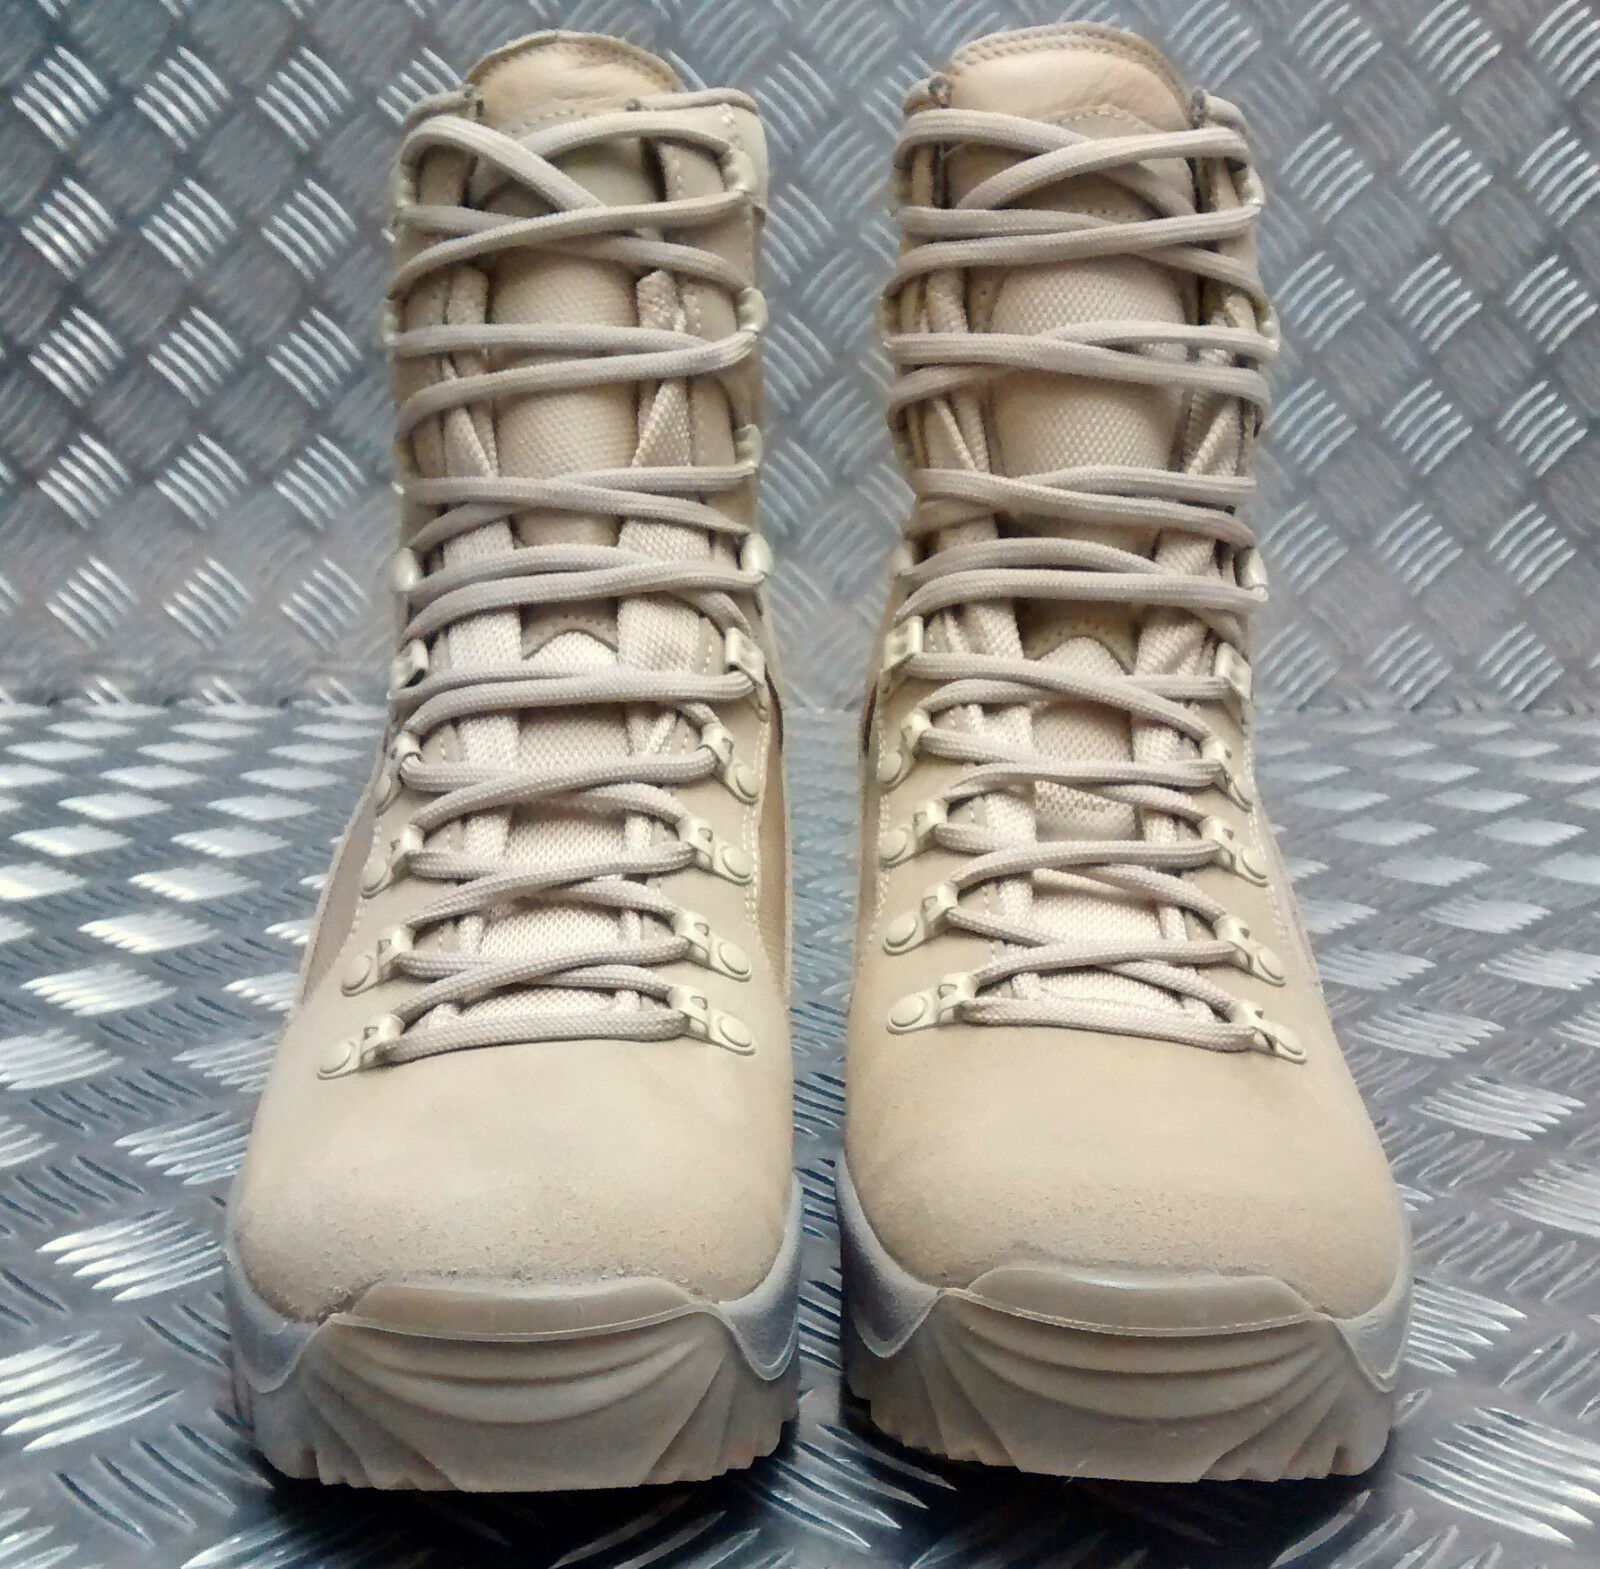 Genuine British Army Issue Meindl Desert Fox Assault Assault Assault / Patrol Combat botas SEL 2c2988